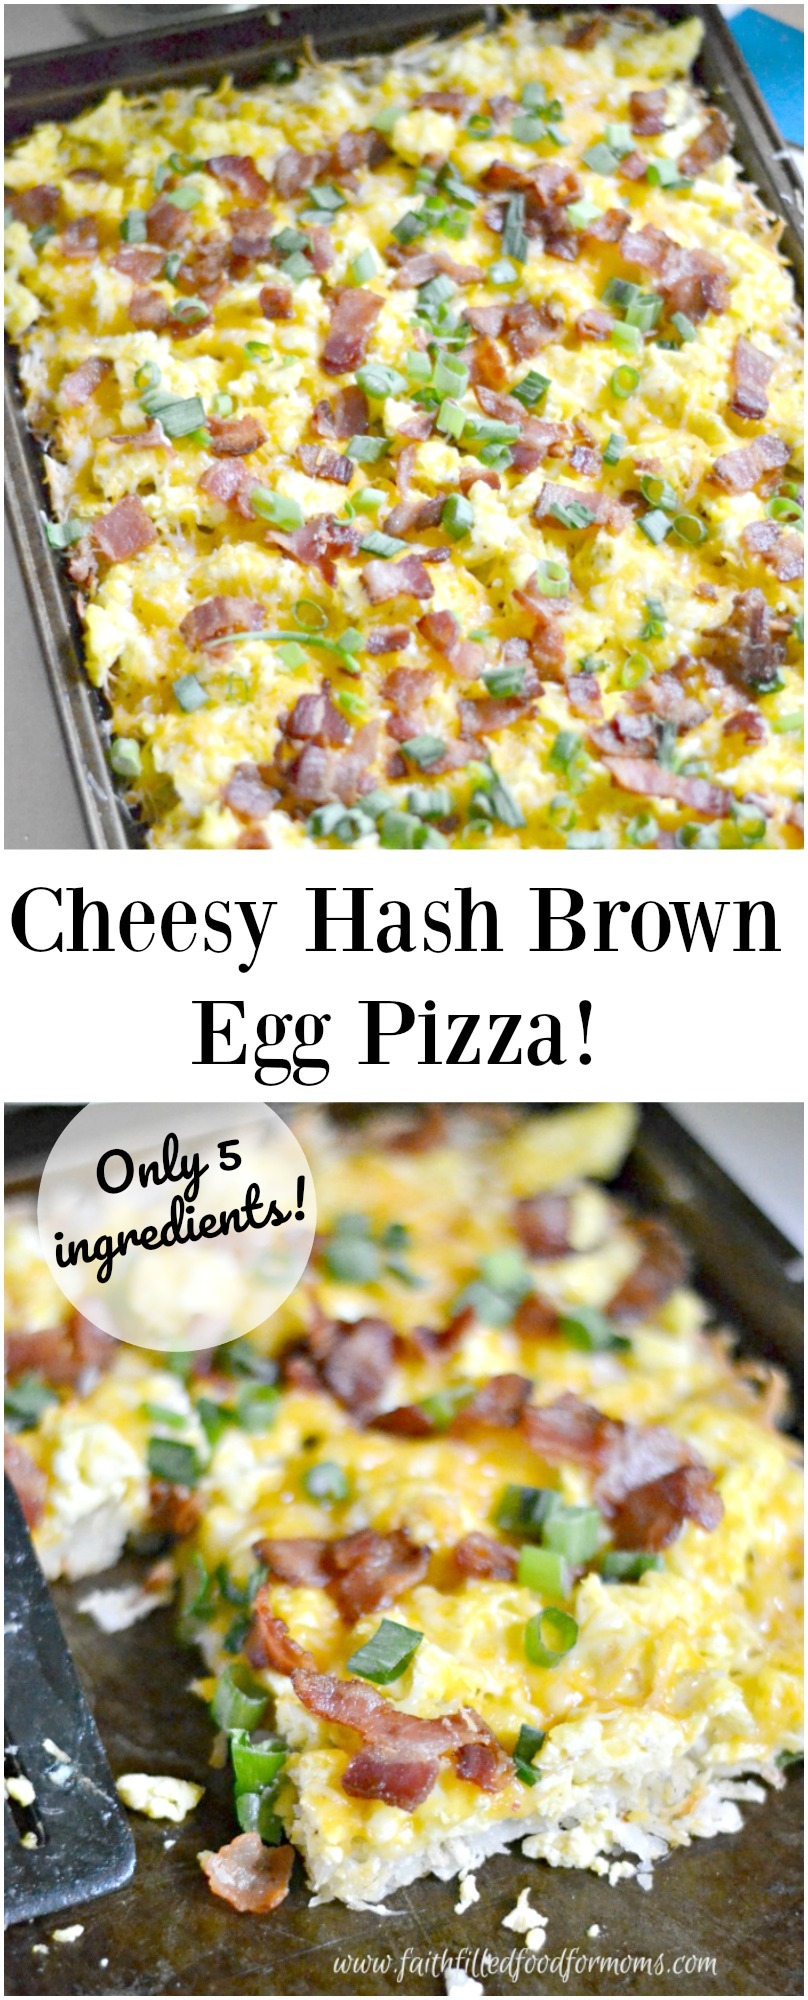 Easy Cheesy Hash Brown and Egg Breakfast Pizza! Such an easy meal and so good for you! Our family loves this easy breakfast pizza. With only 5 ingredients you can have this whipped up from everyday foods you have in your cupboard. Can also be made ahead and frozen in individual portions! YAY!